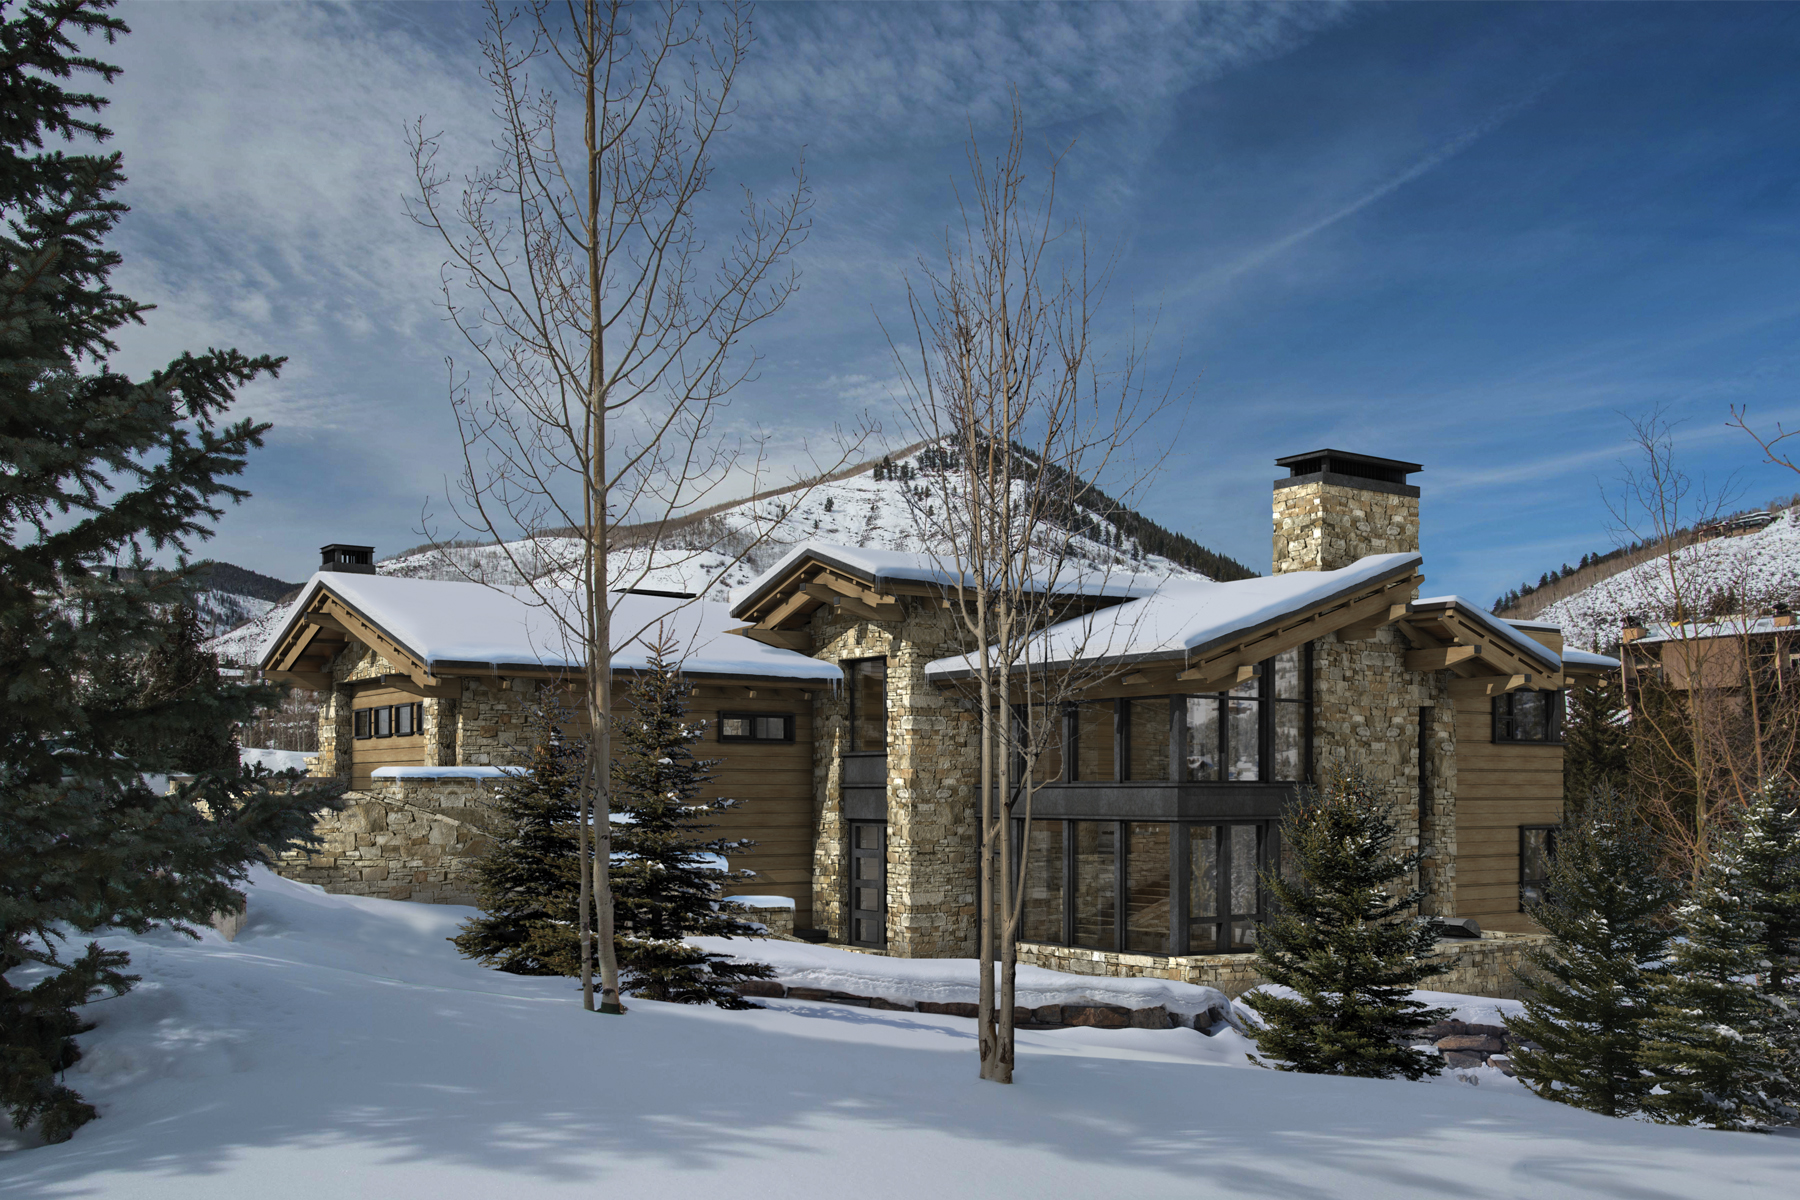 Single Family Home for Active at New Construction on Forest Road 645 Forest Road Vail, Colorado 81657 United States